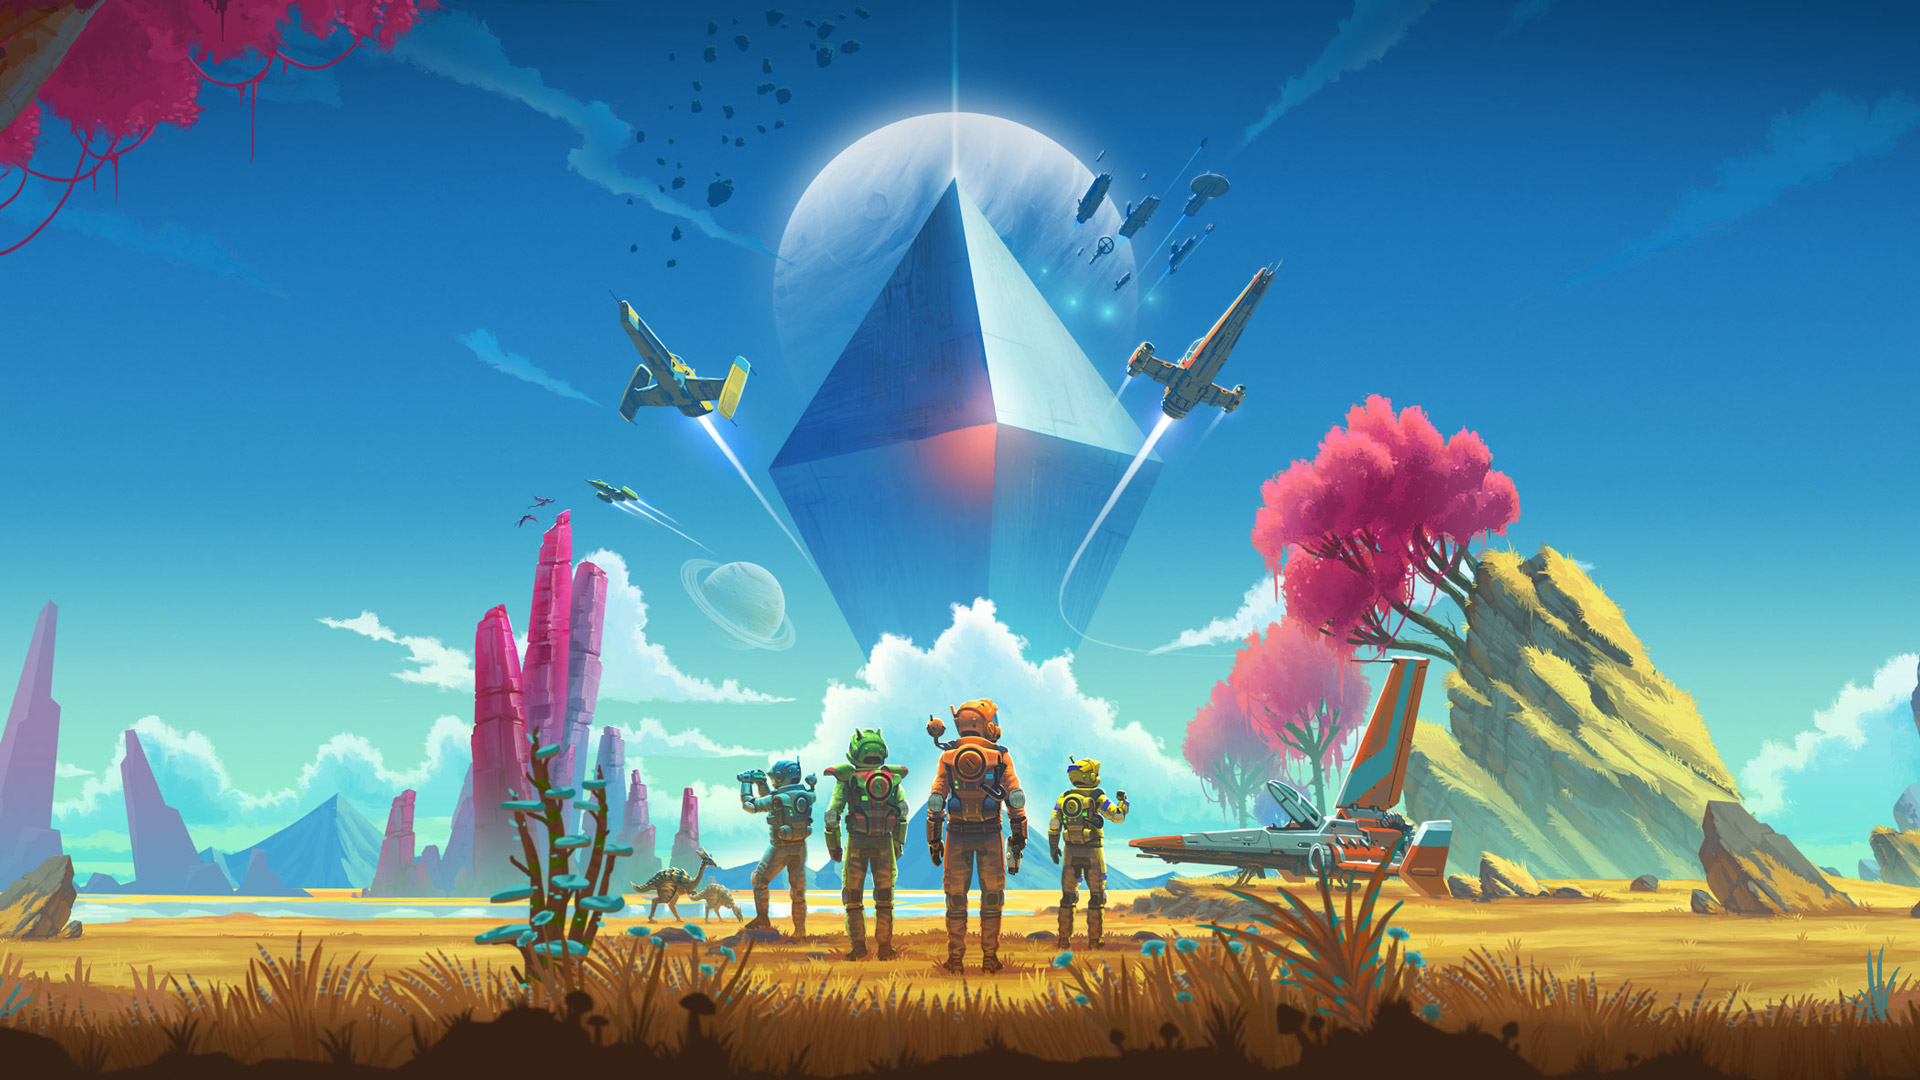 Preview: No Man's Sky in VR Promises a Galaxy Full of Possibilities